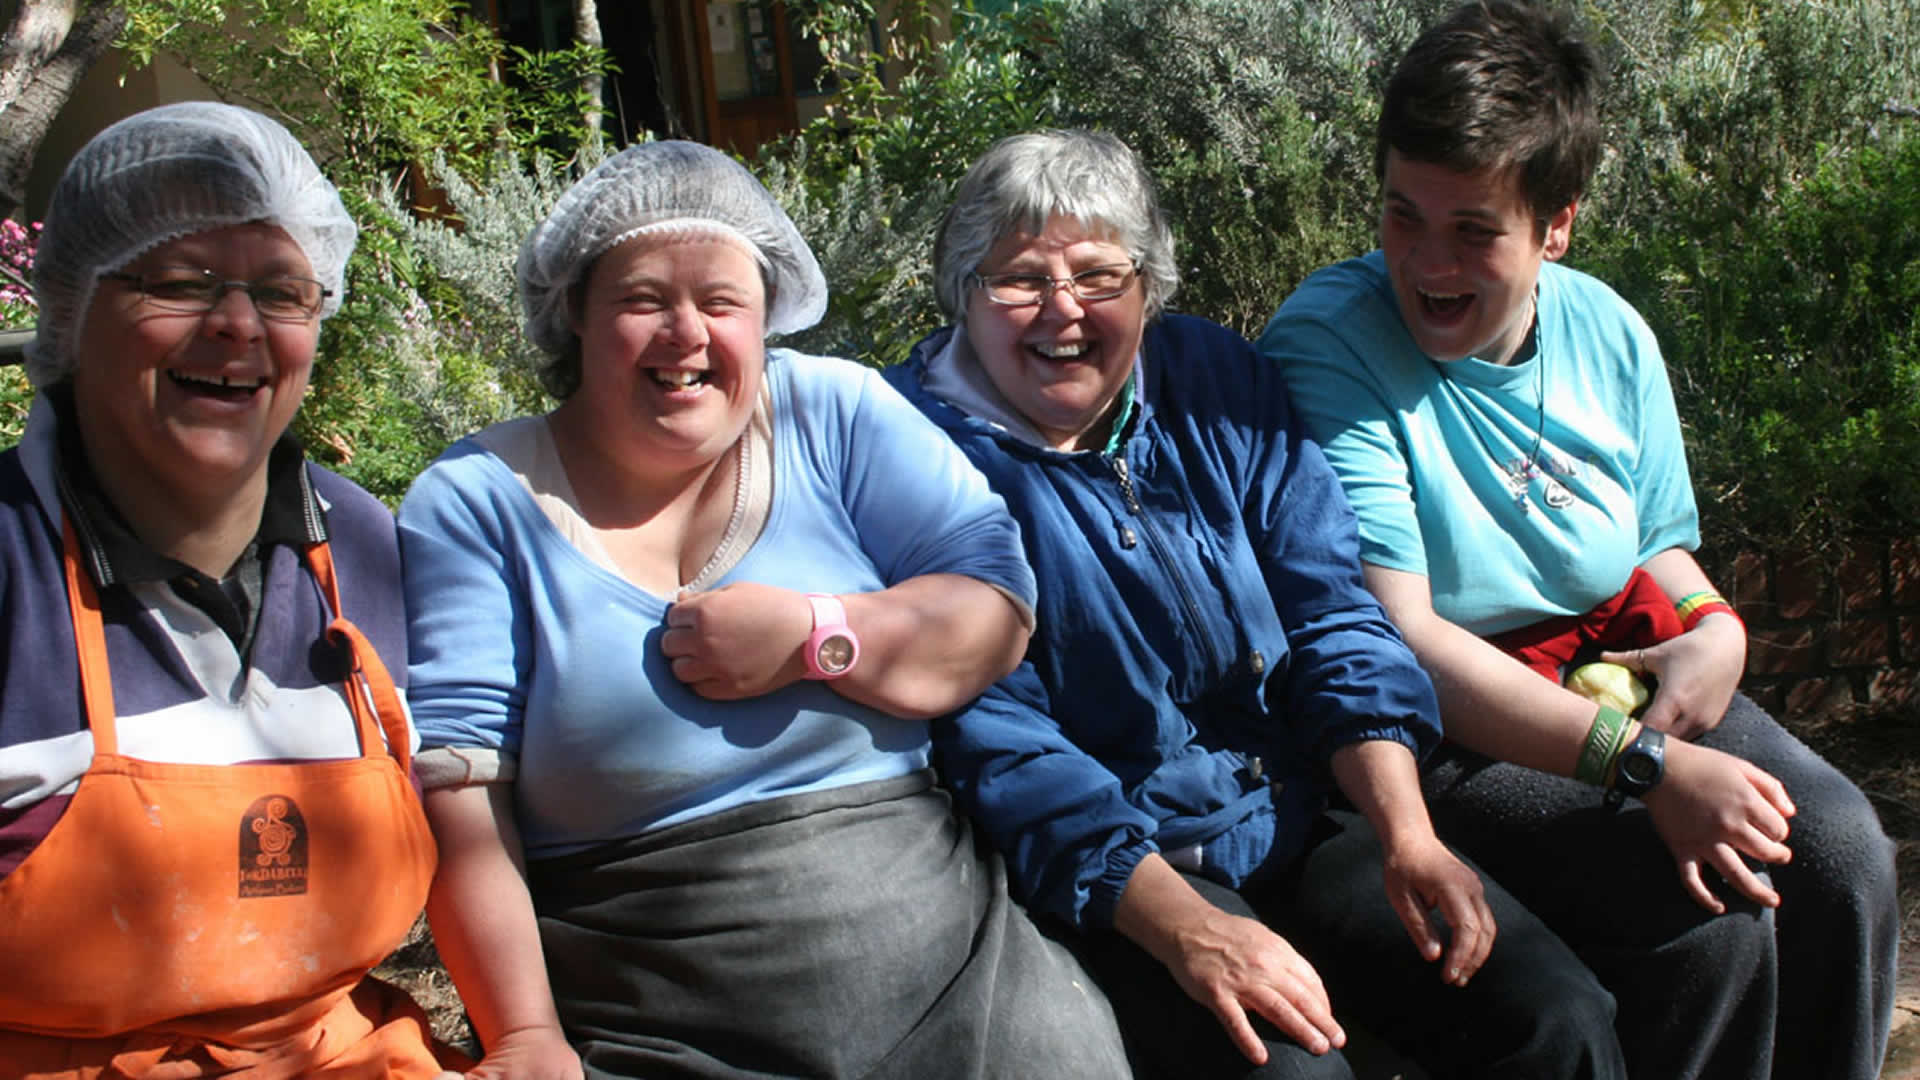 Camphill Village West Coast - Residential Farm for Adults with Intellectual Disabilities